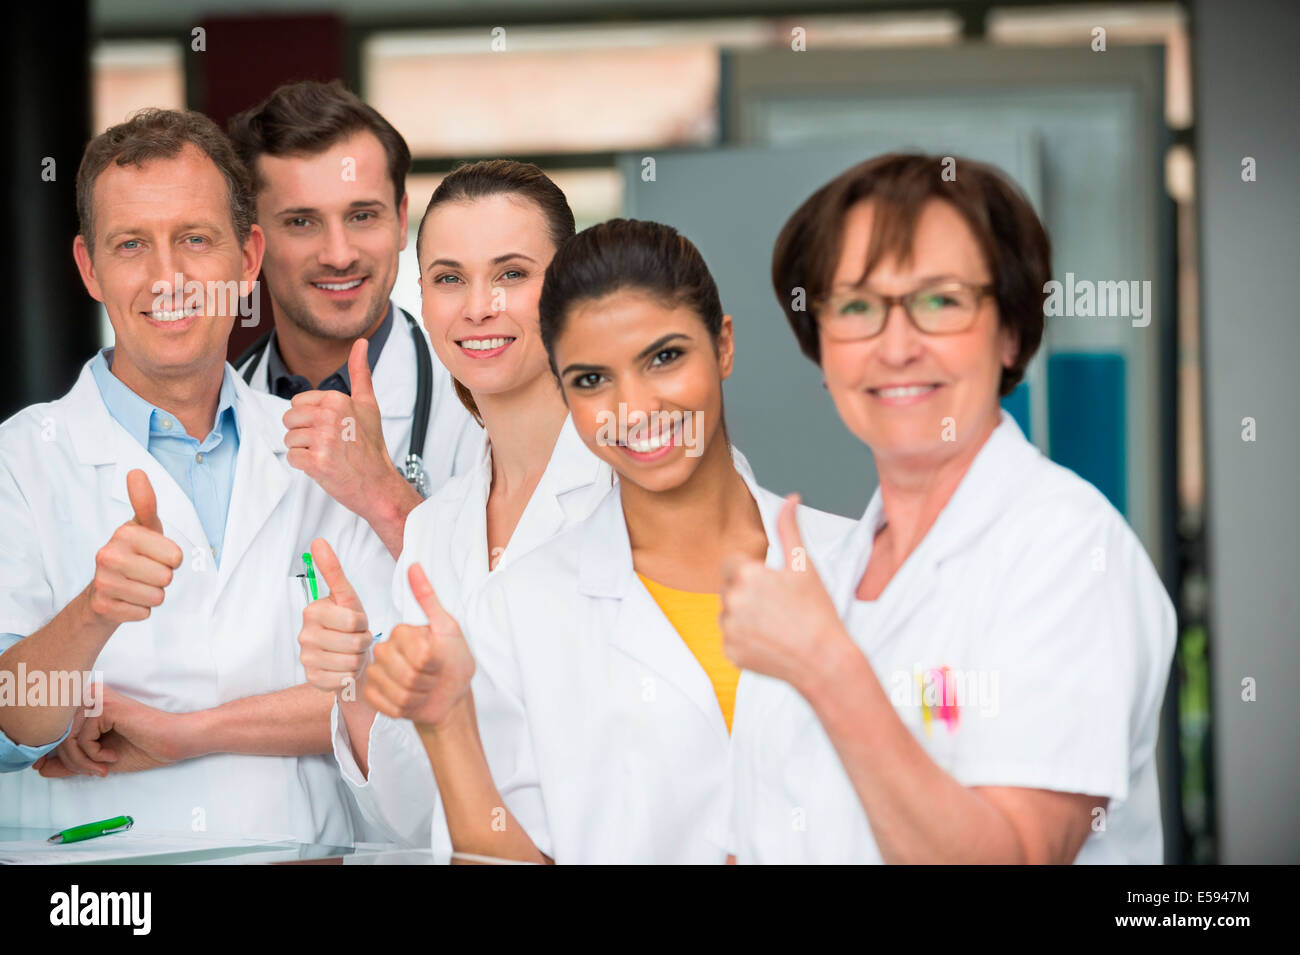 Portrait of medical-team showing thumbs up - Stock Image